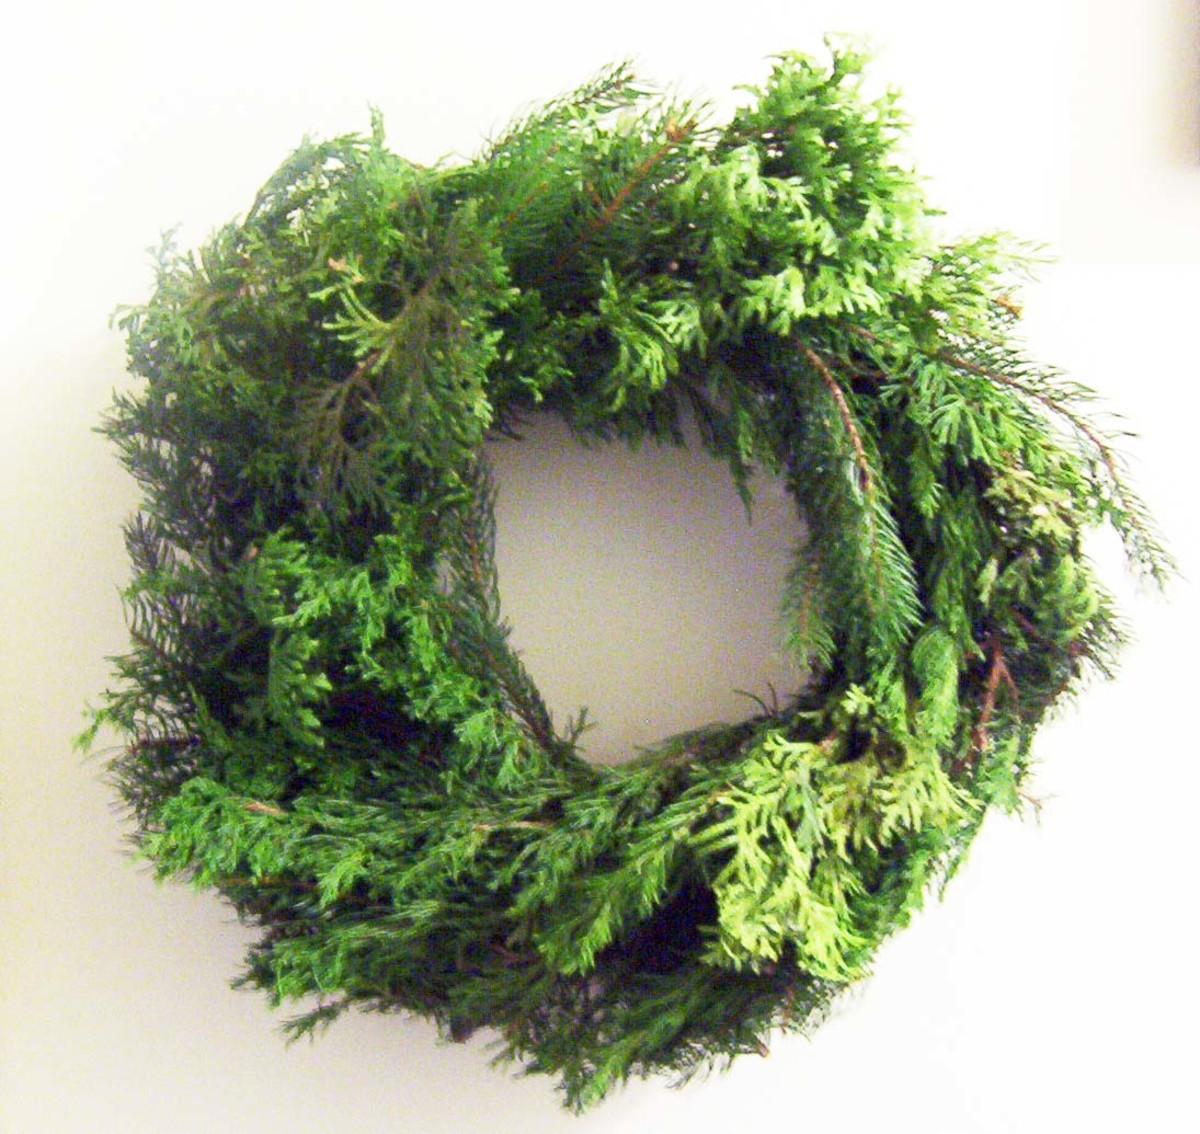 Christmas Wreath - How to Make an Evergreen Wreath